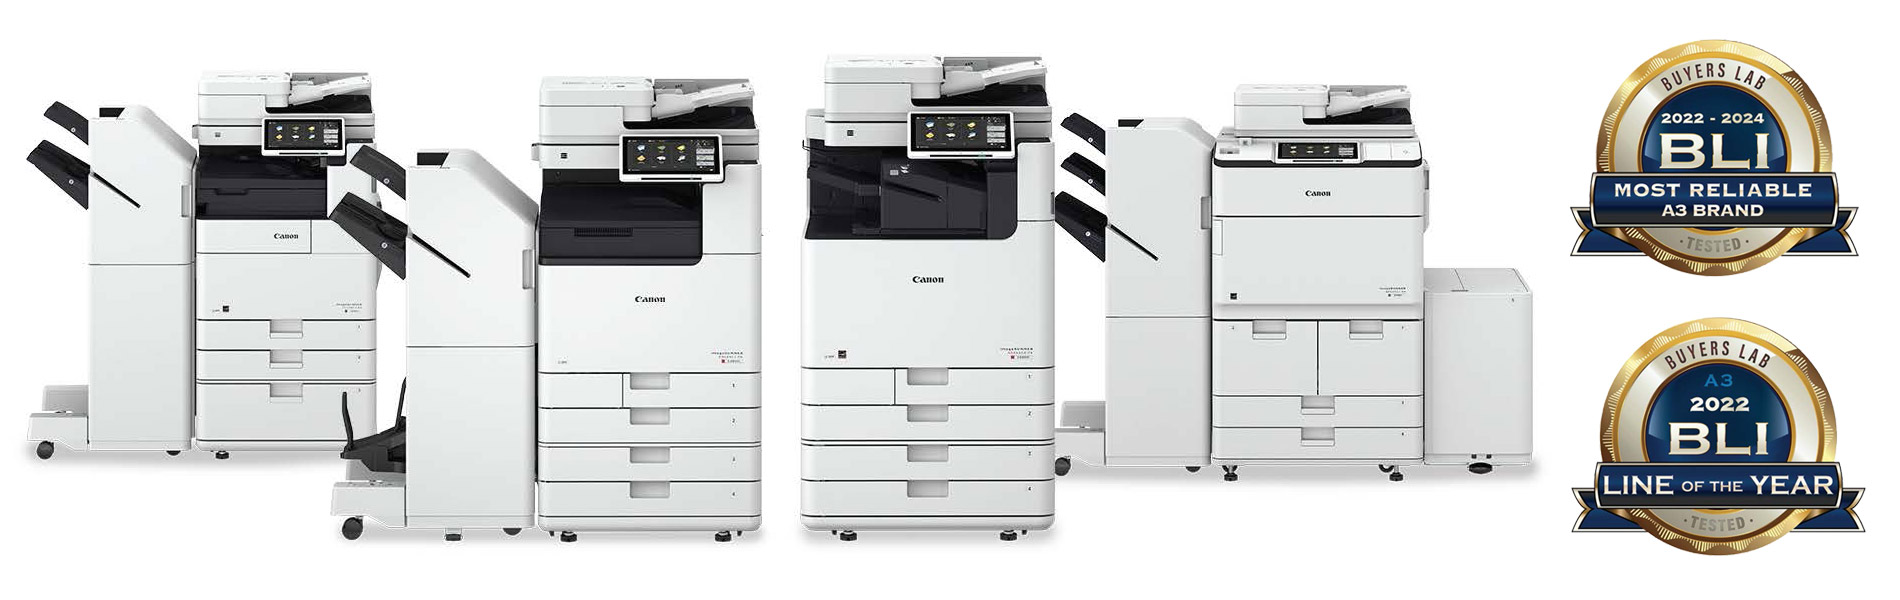 Image of imageRUNNER ADVANCE multifunction printers and copiers